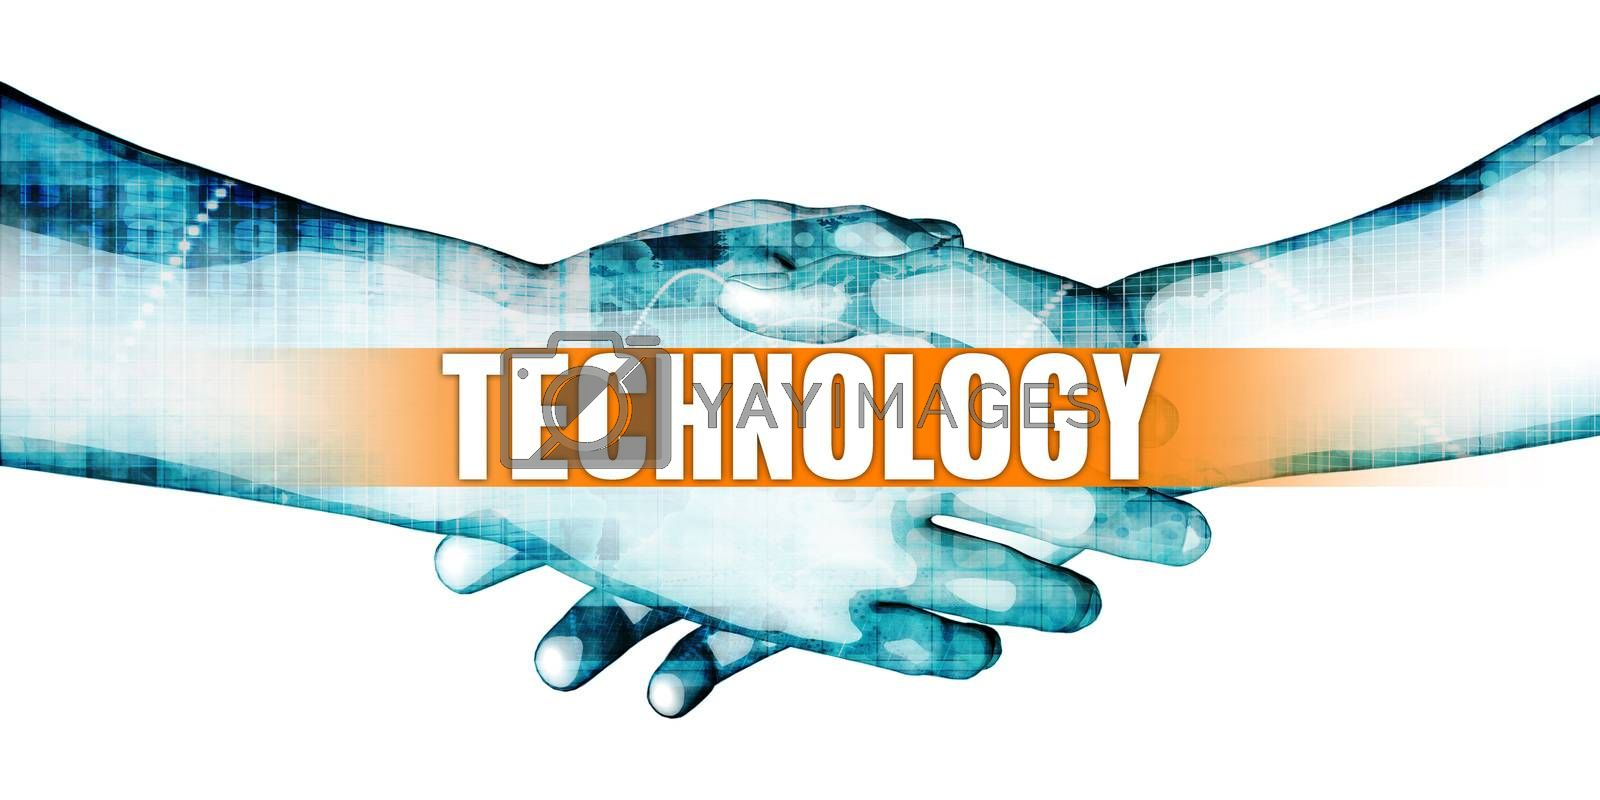 Technology Concept with Businessmen Handshake on White Background